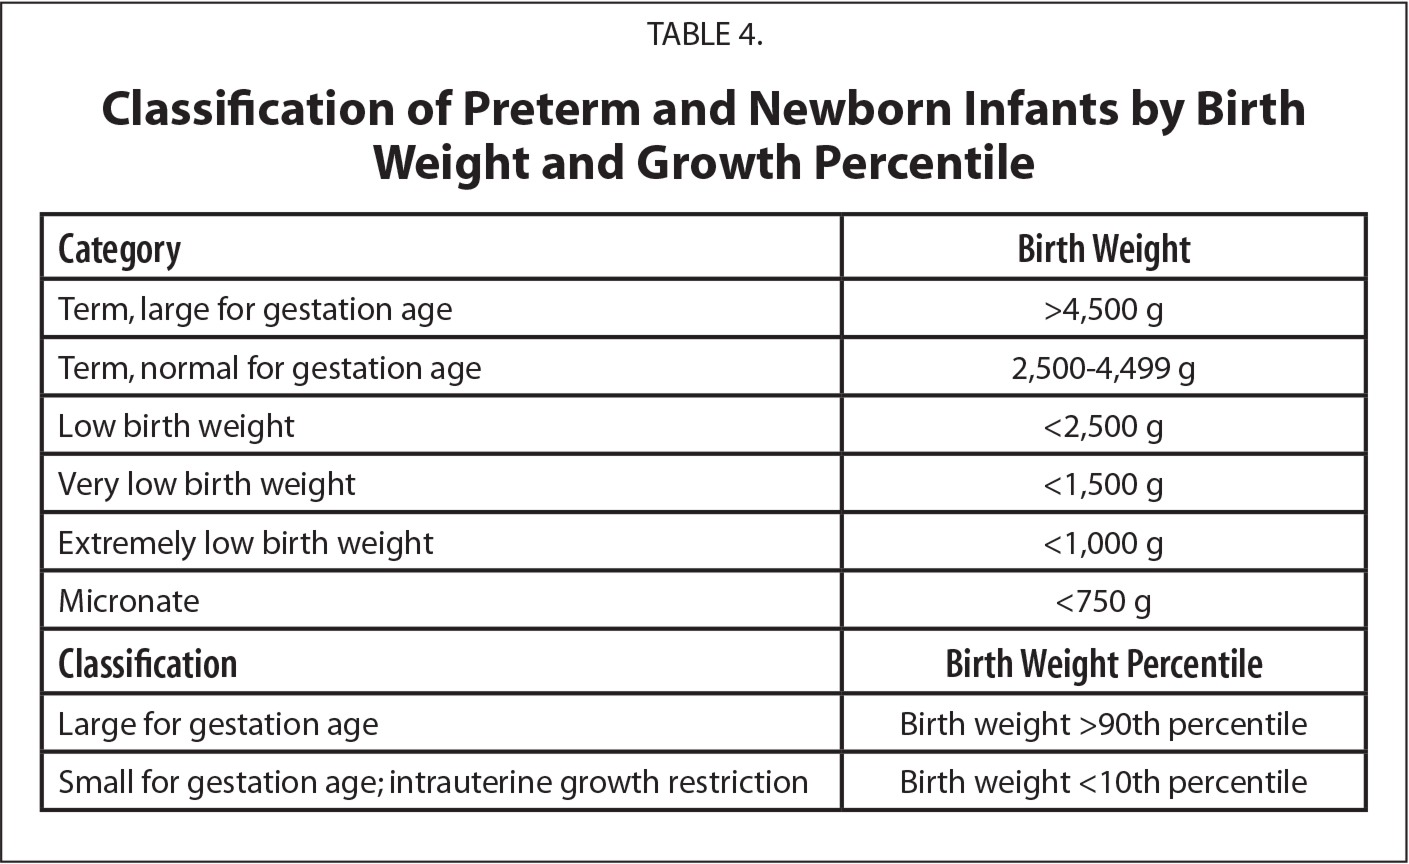 Classification of Preterm and Newborn Infants by Birth Weight and Growth Percentile